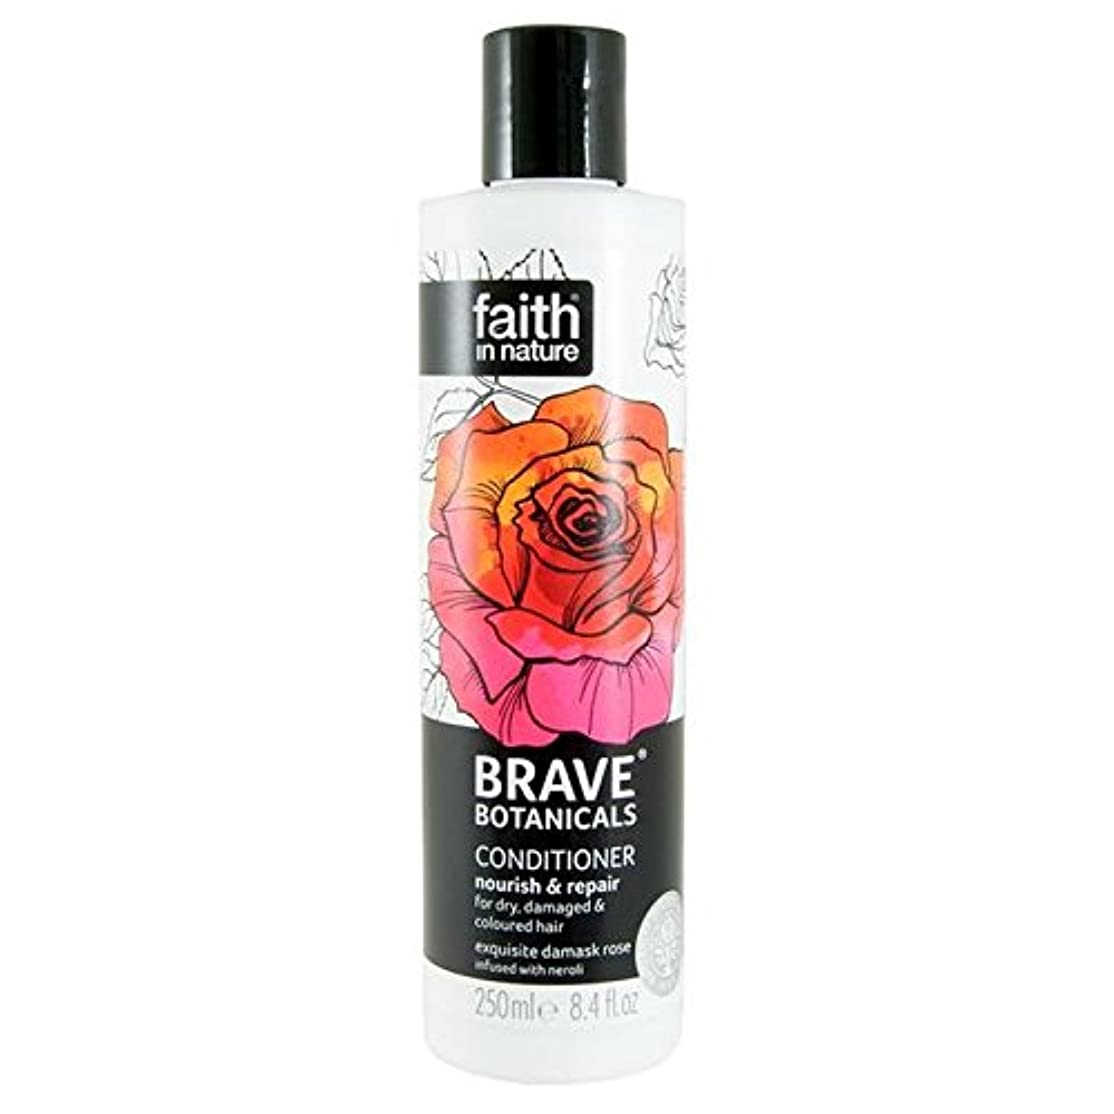 仮定する地下鉄天文学Brave Botanicals Rose & Neroli Nourish & Repair Conditioner 250ml (Pack of 2) - (Faith In Nature) 勇敢な植物は、ローズ&ネロリ...